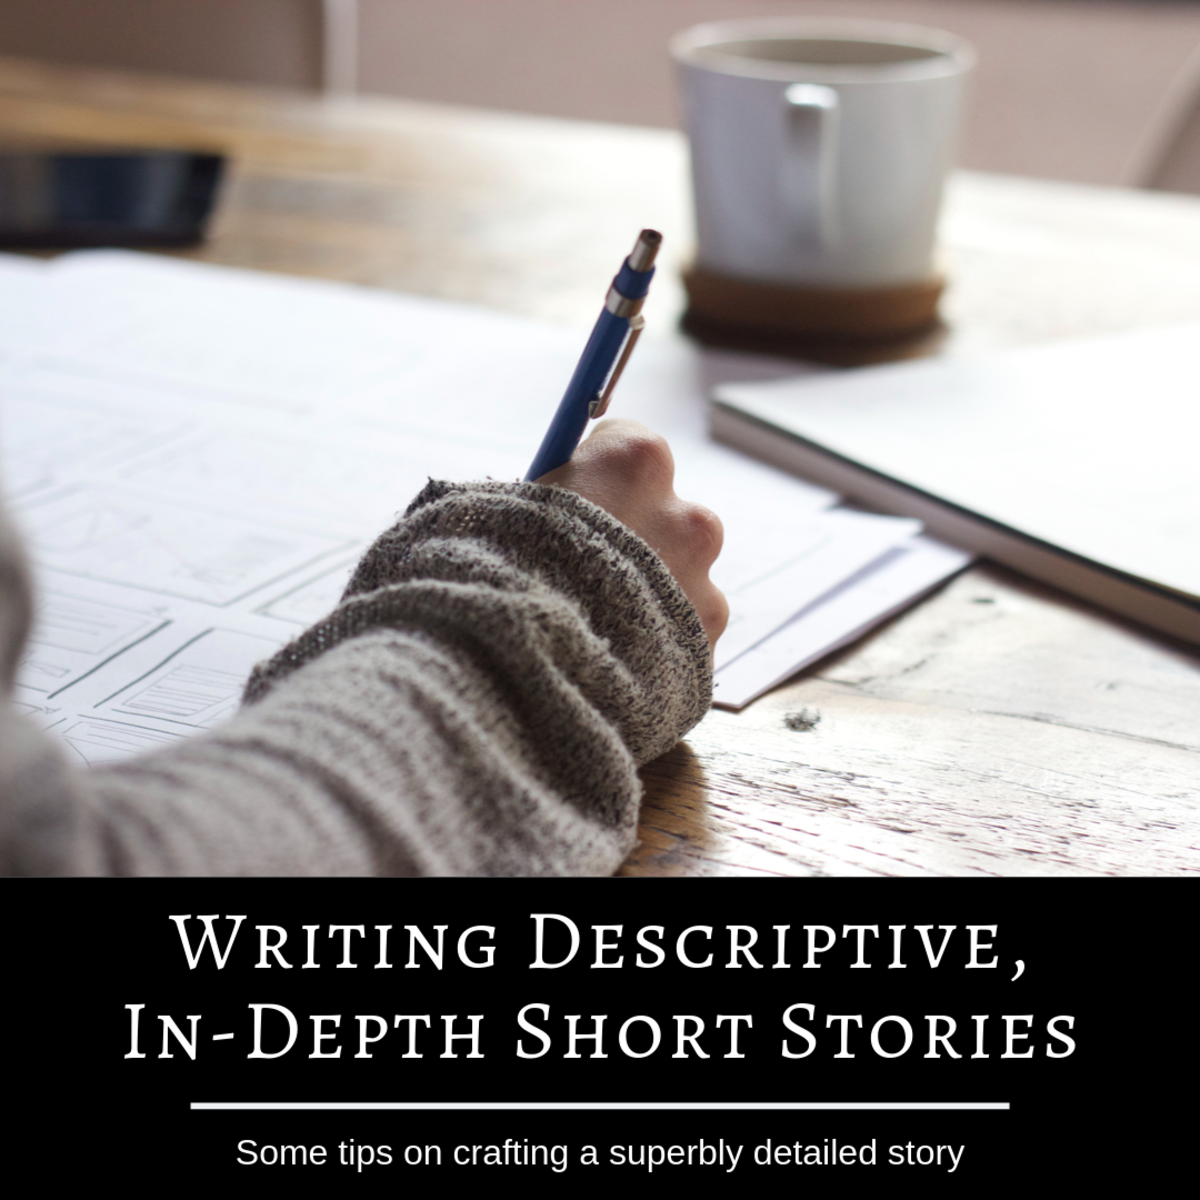 This article will provide some tips and tricks for putting together a vividly descriptive and in-depth short story.